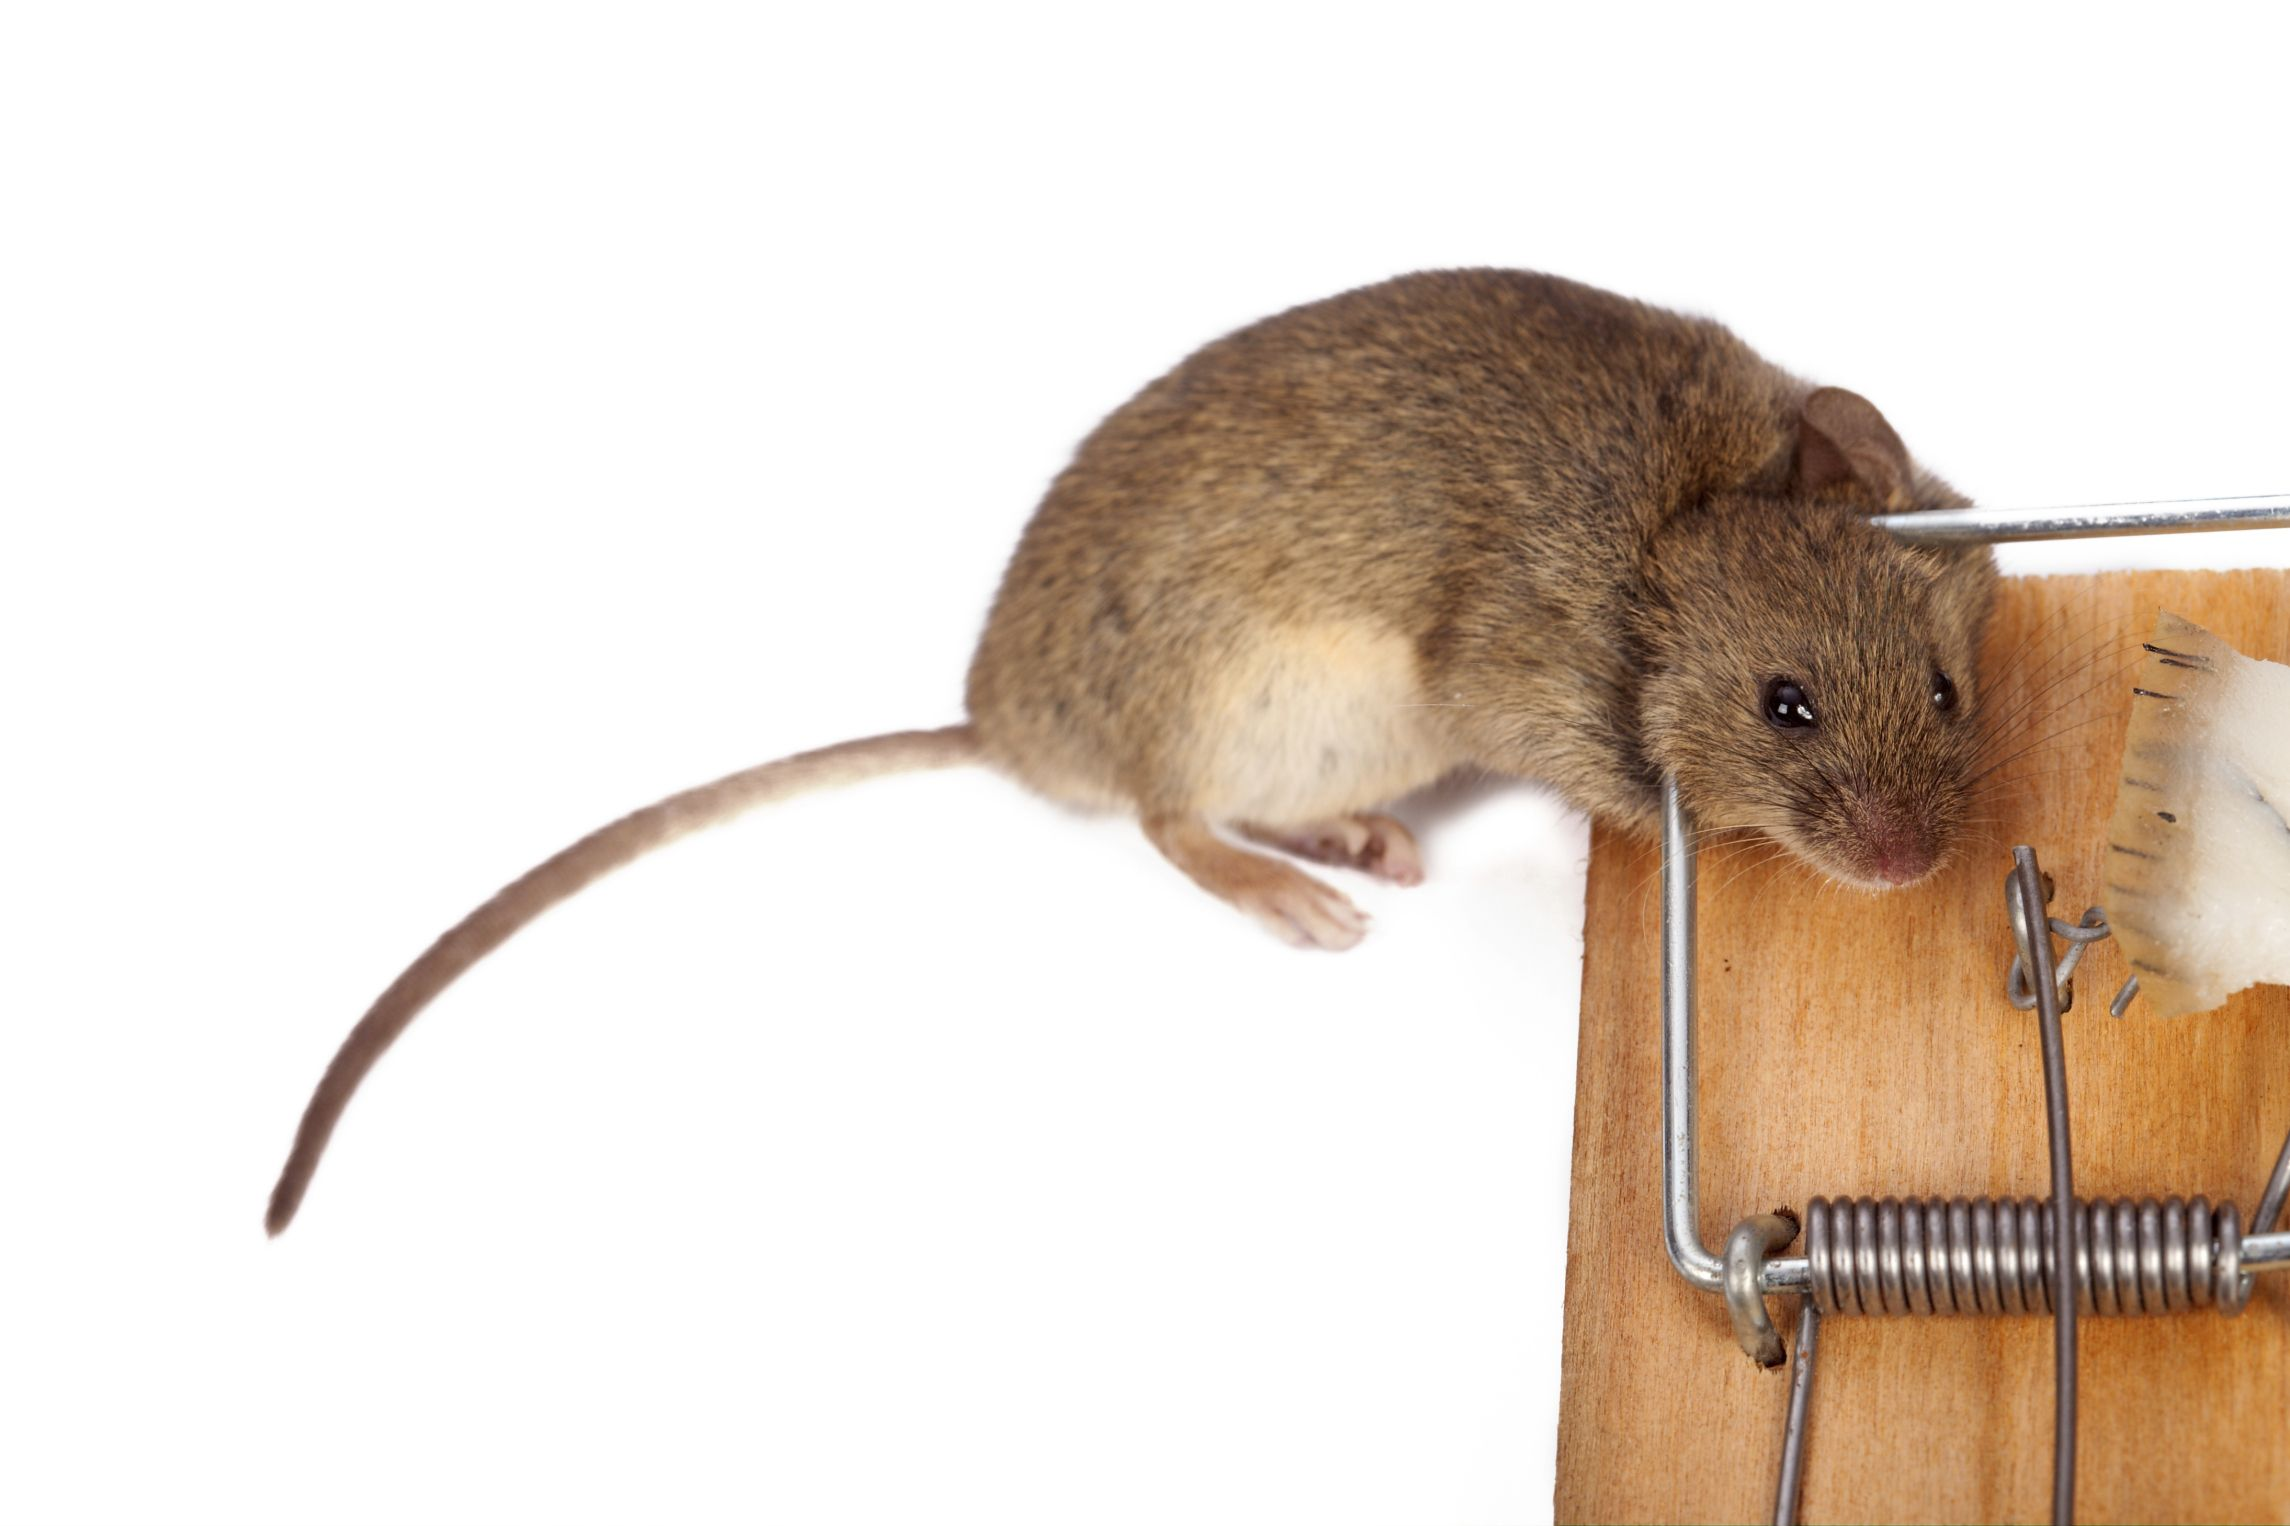 Good Riddance Pest Control Is A Well Known Rodent Specialists In The Palm Coast Fl Area Reach Our Team At Now